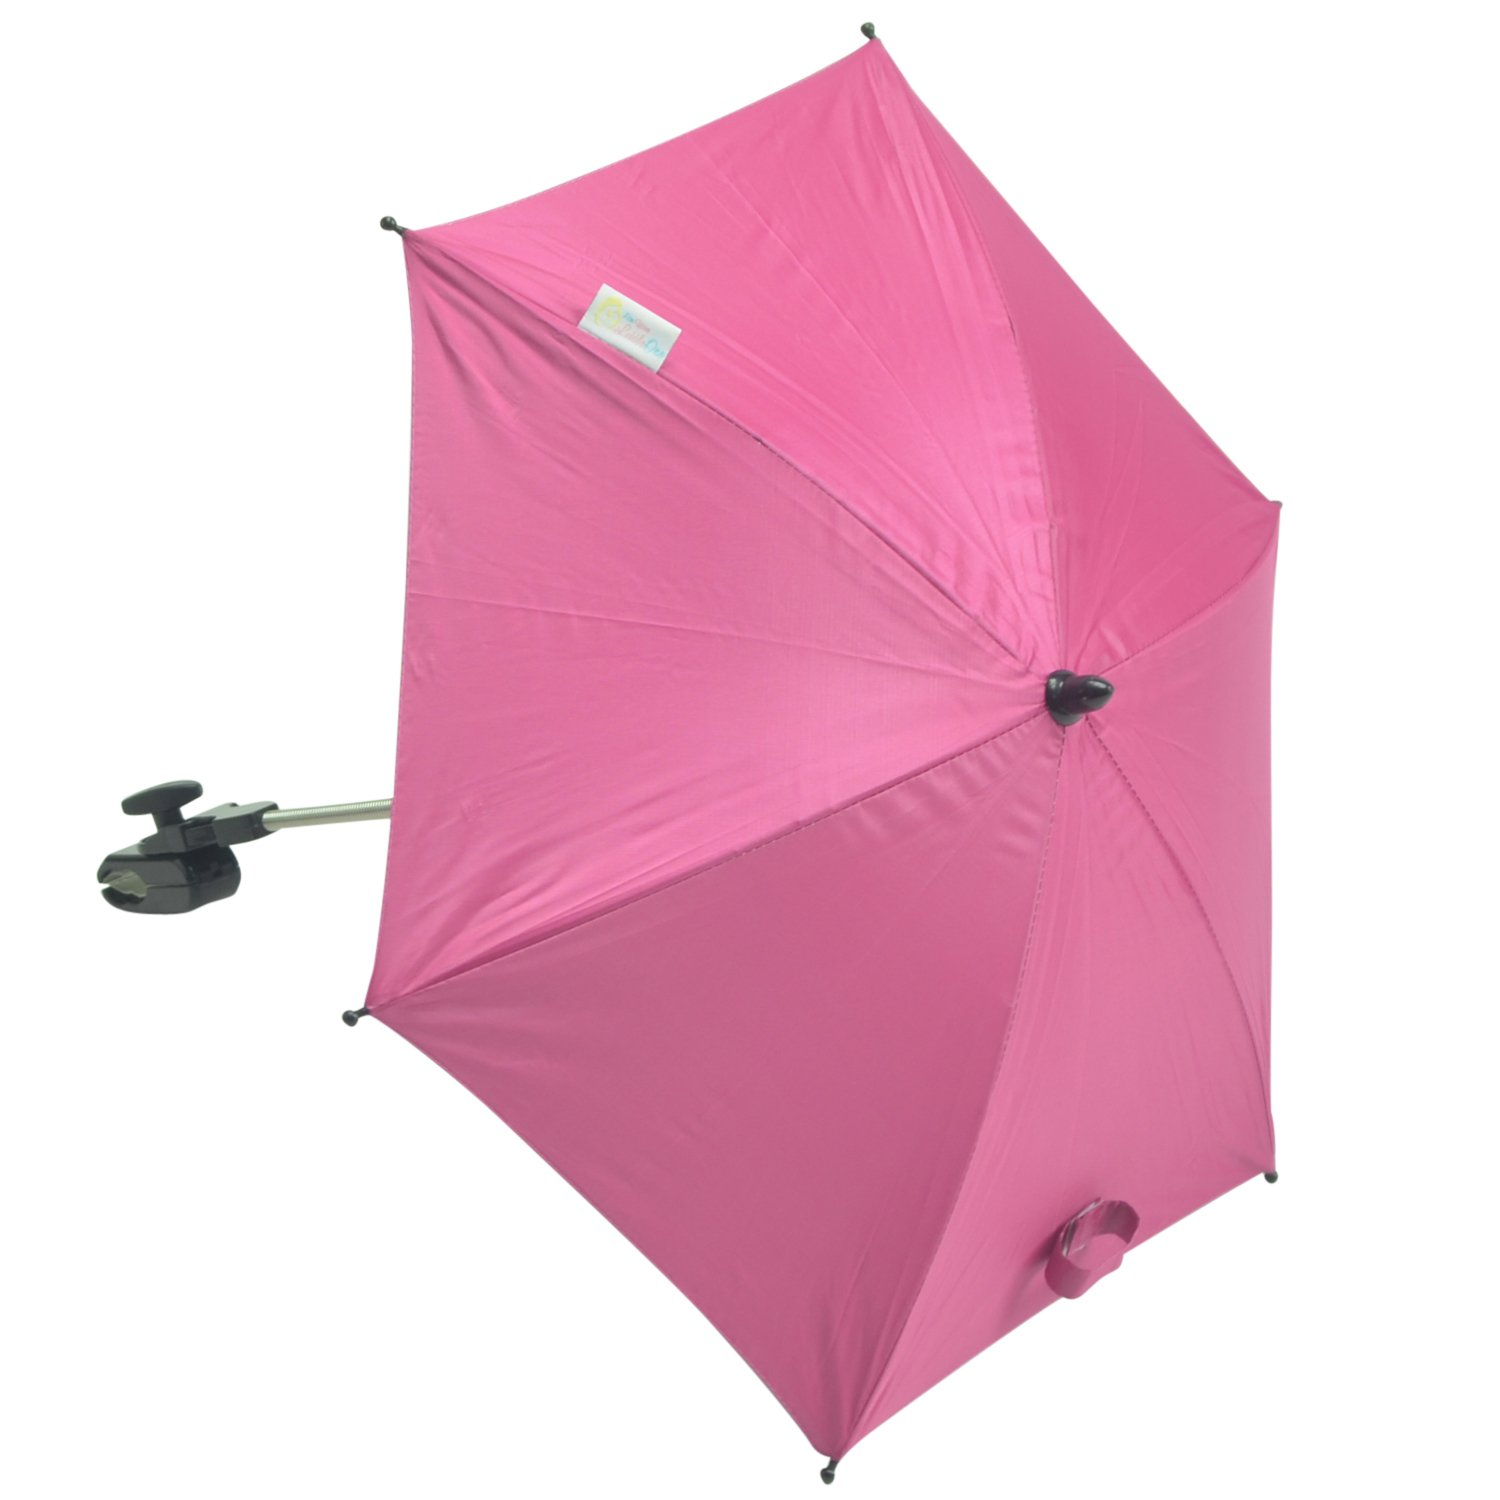 For-Your-little-One Parasol Compatible with Mothercare Jive Stroller, Hot Pink For-Your-Little-One Ltd. FYLOHTPK356